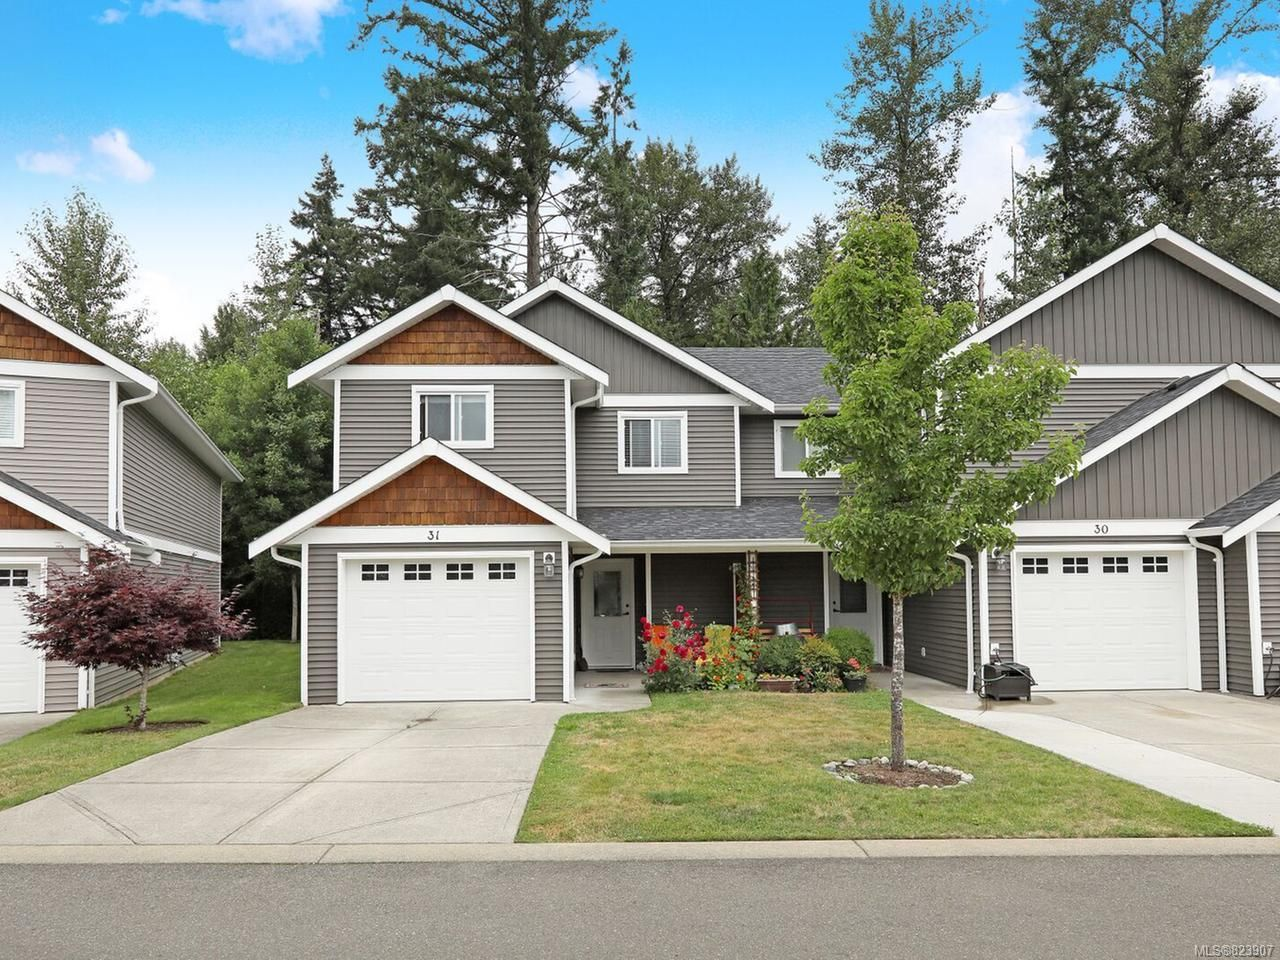 Main Photo: 31 3400 Coniston Cres in CUMBERLAND: CV Cumberland Row/Townhouse for sale (Comox Valley)  : MLS®# 823907